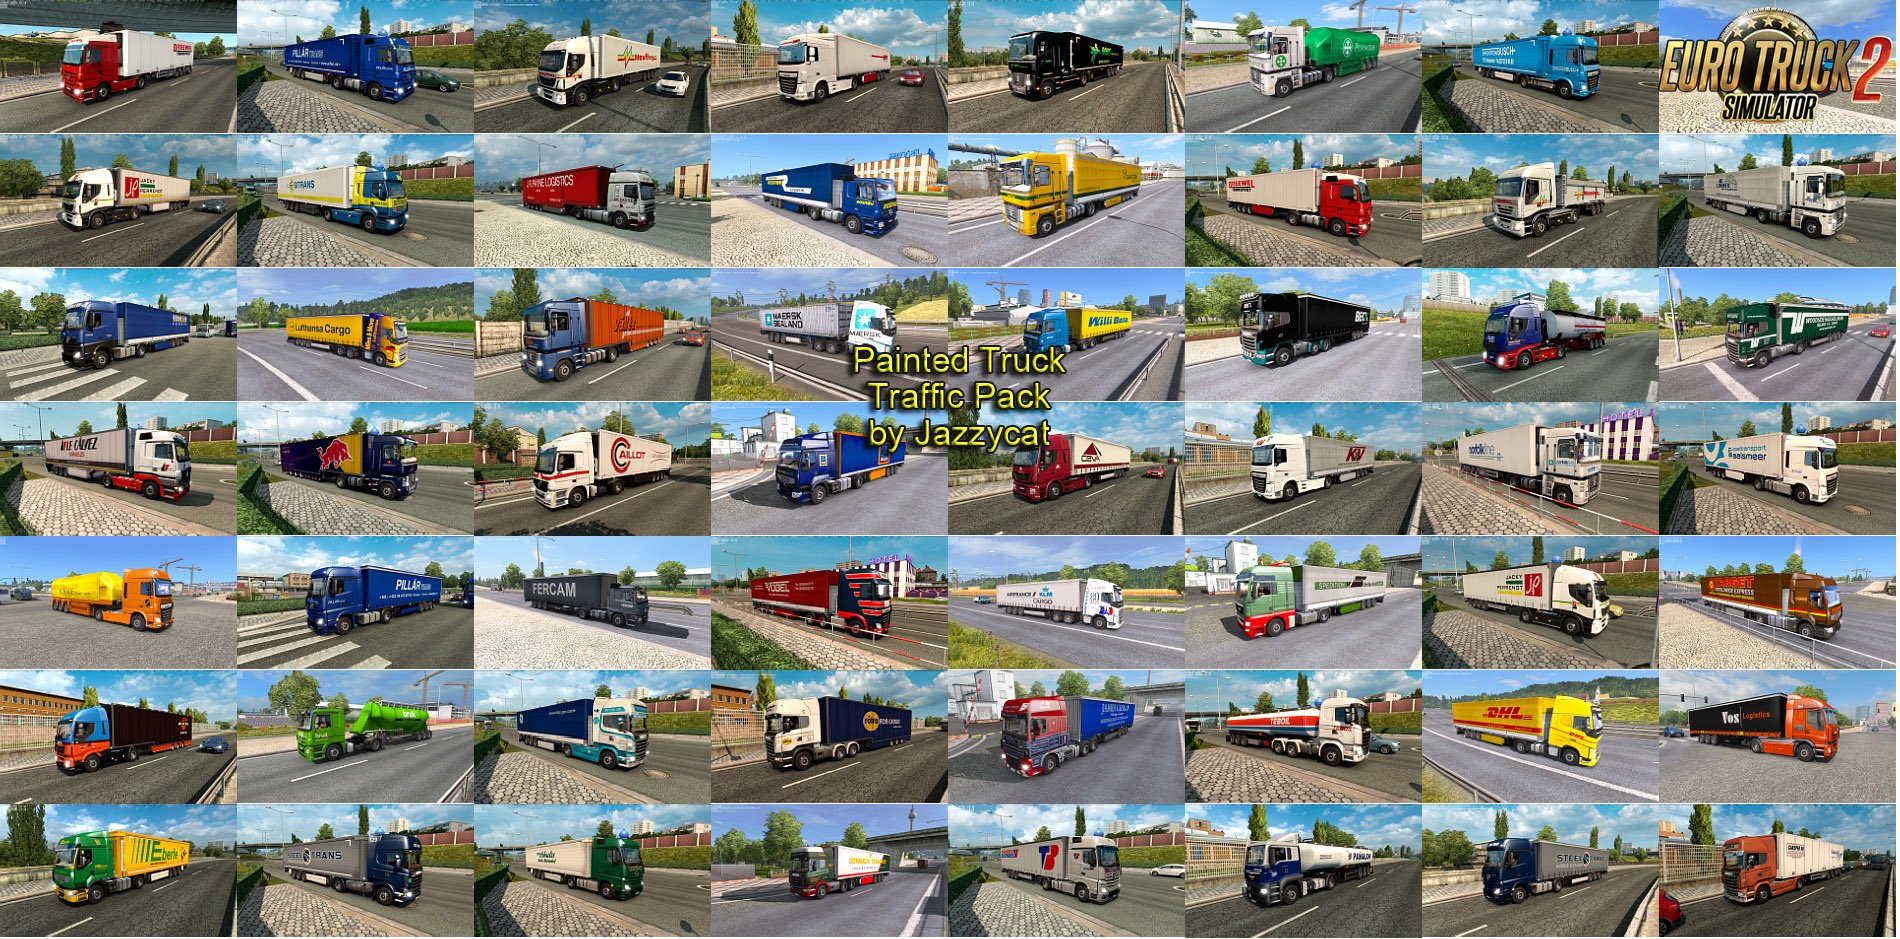 Painted Truck Traffic Pack v3.9 by Jazzycat